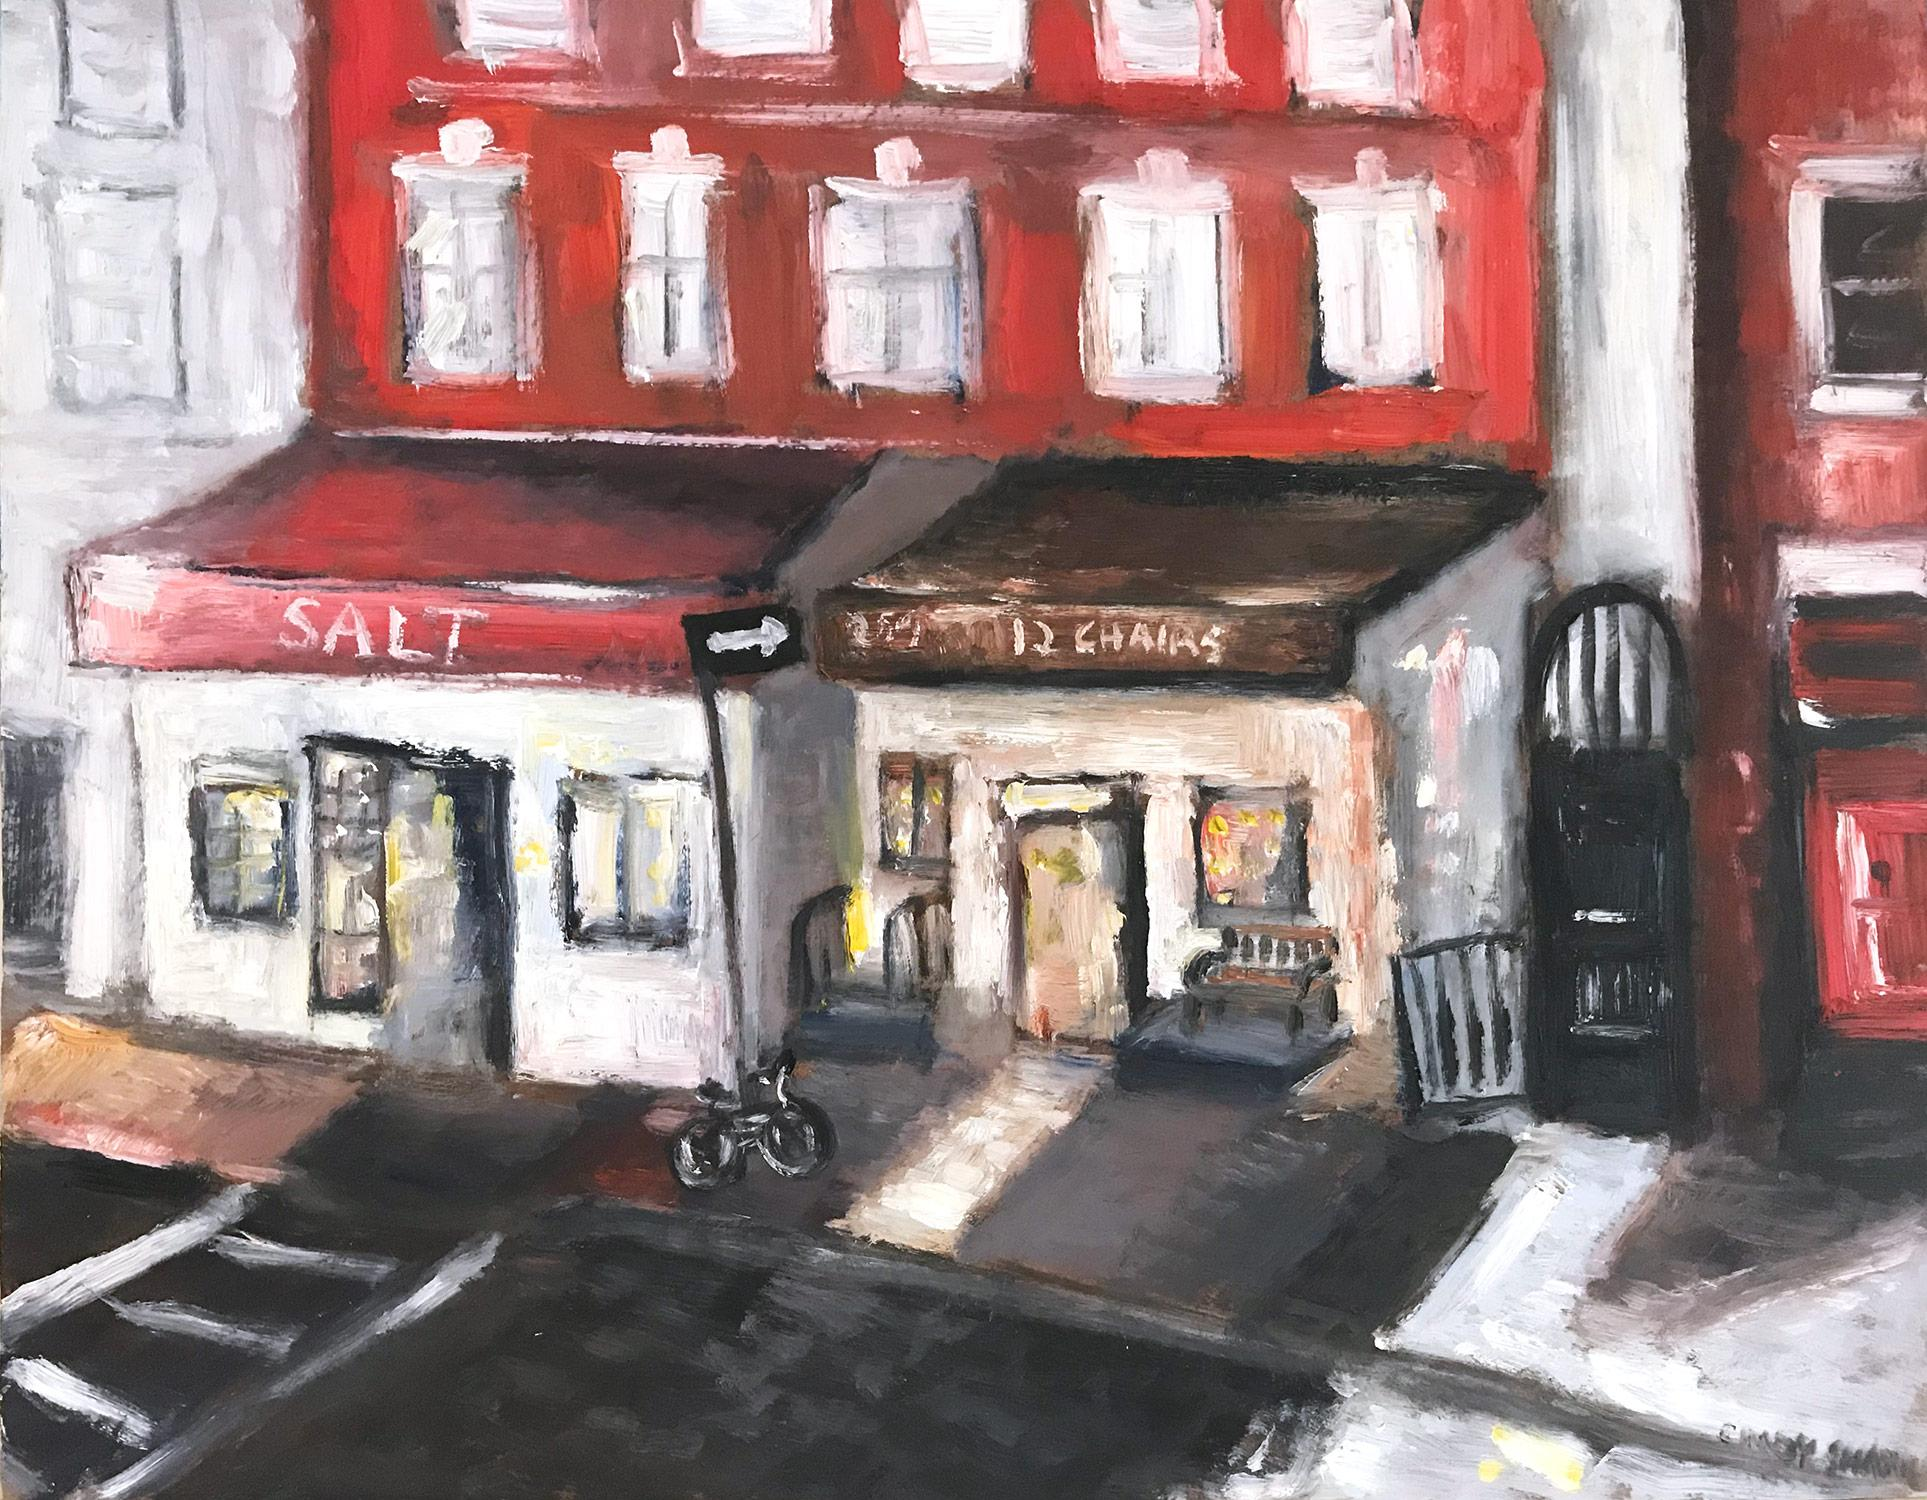 """12 Chairs"" Impressionistic Street Scene Oil Painting in West Village, Manhattan"